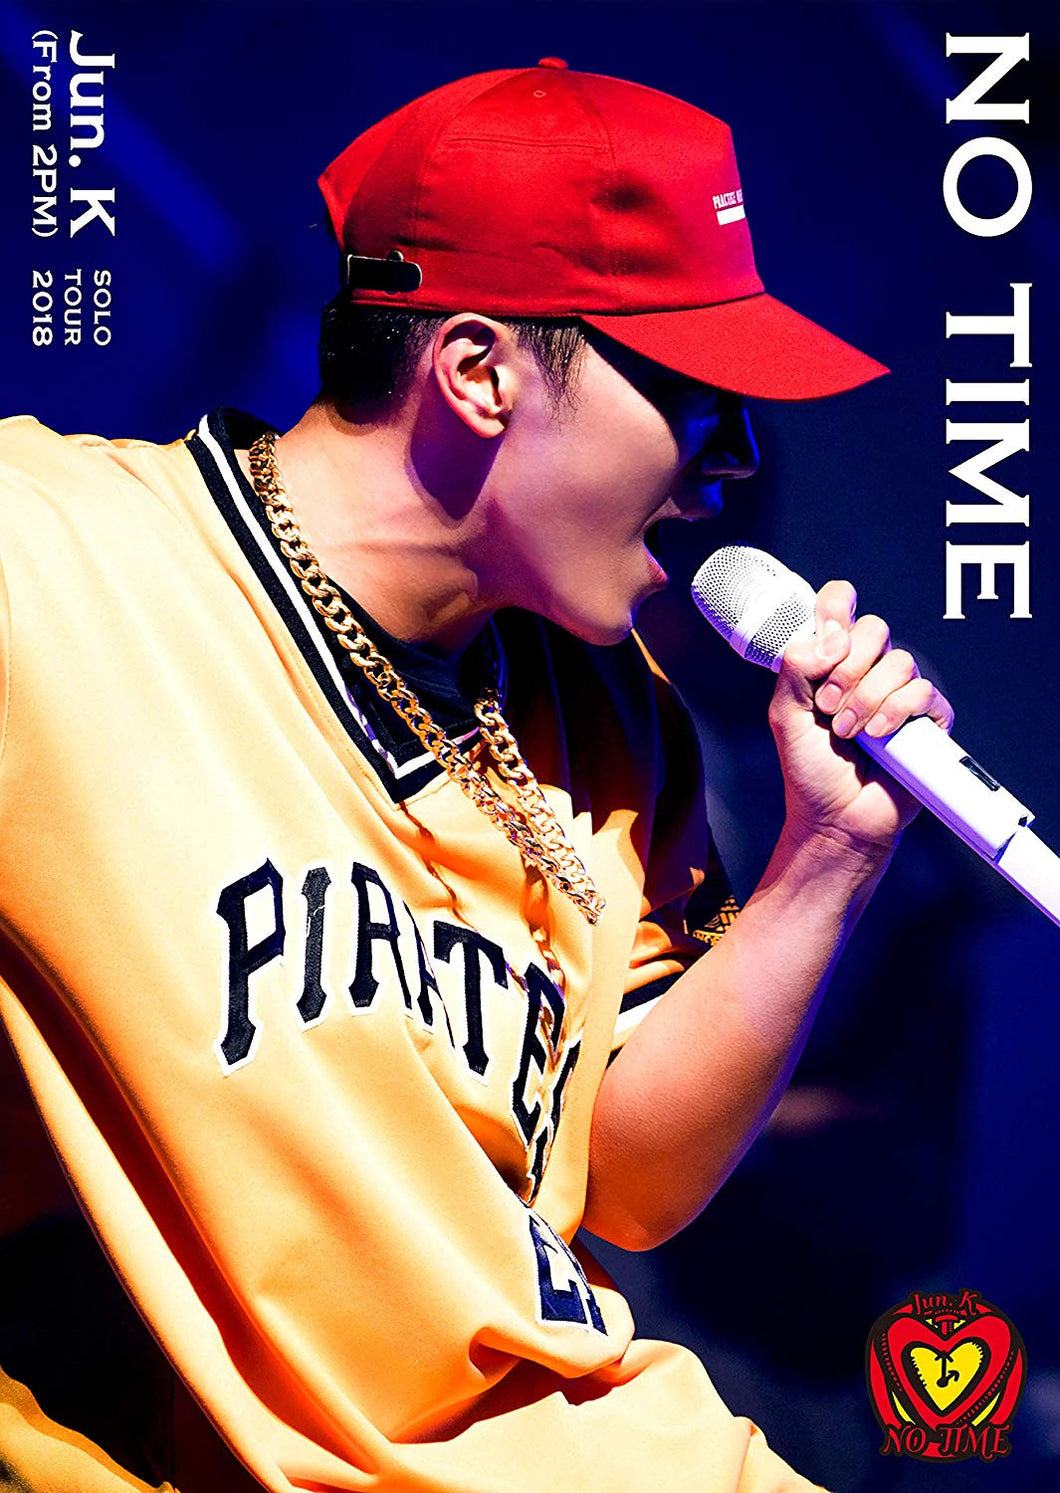 Jun.K - Solo Tour 2018